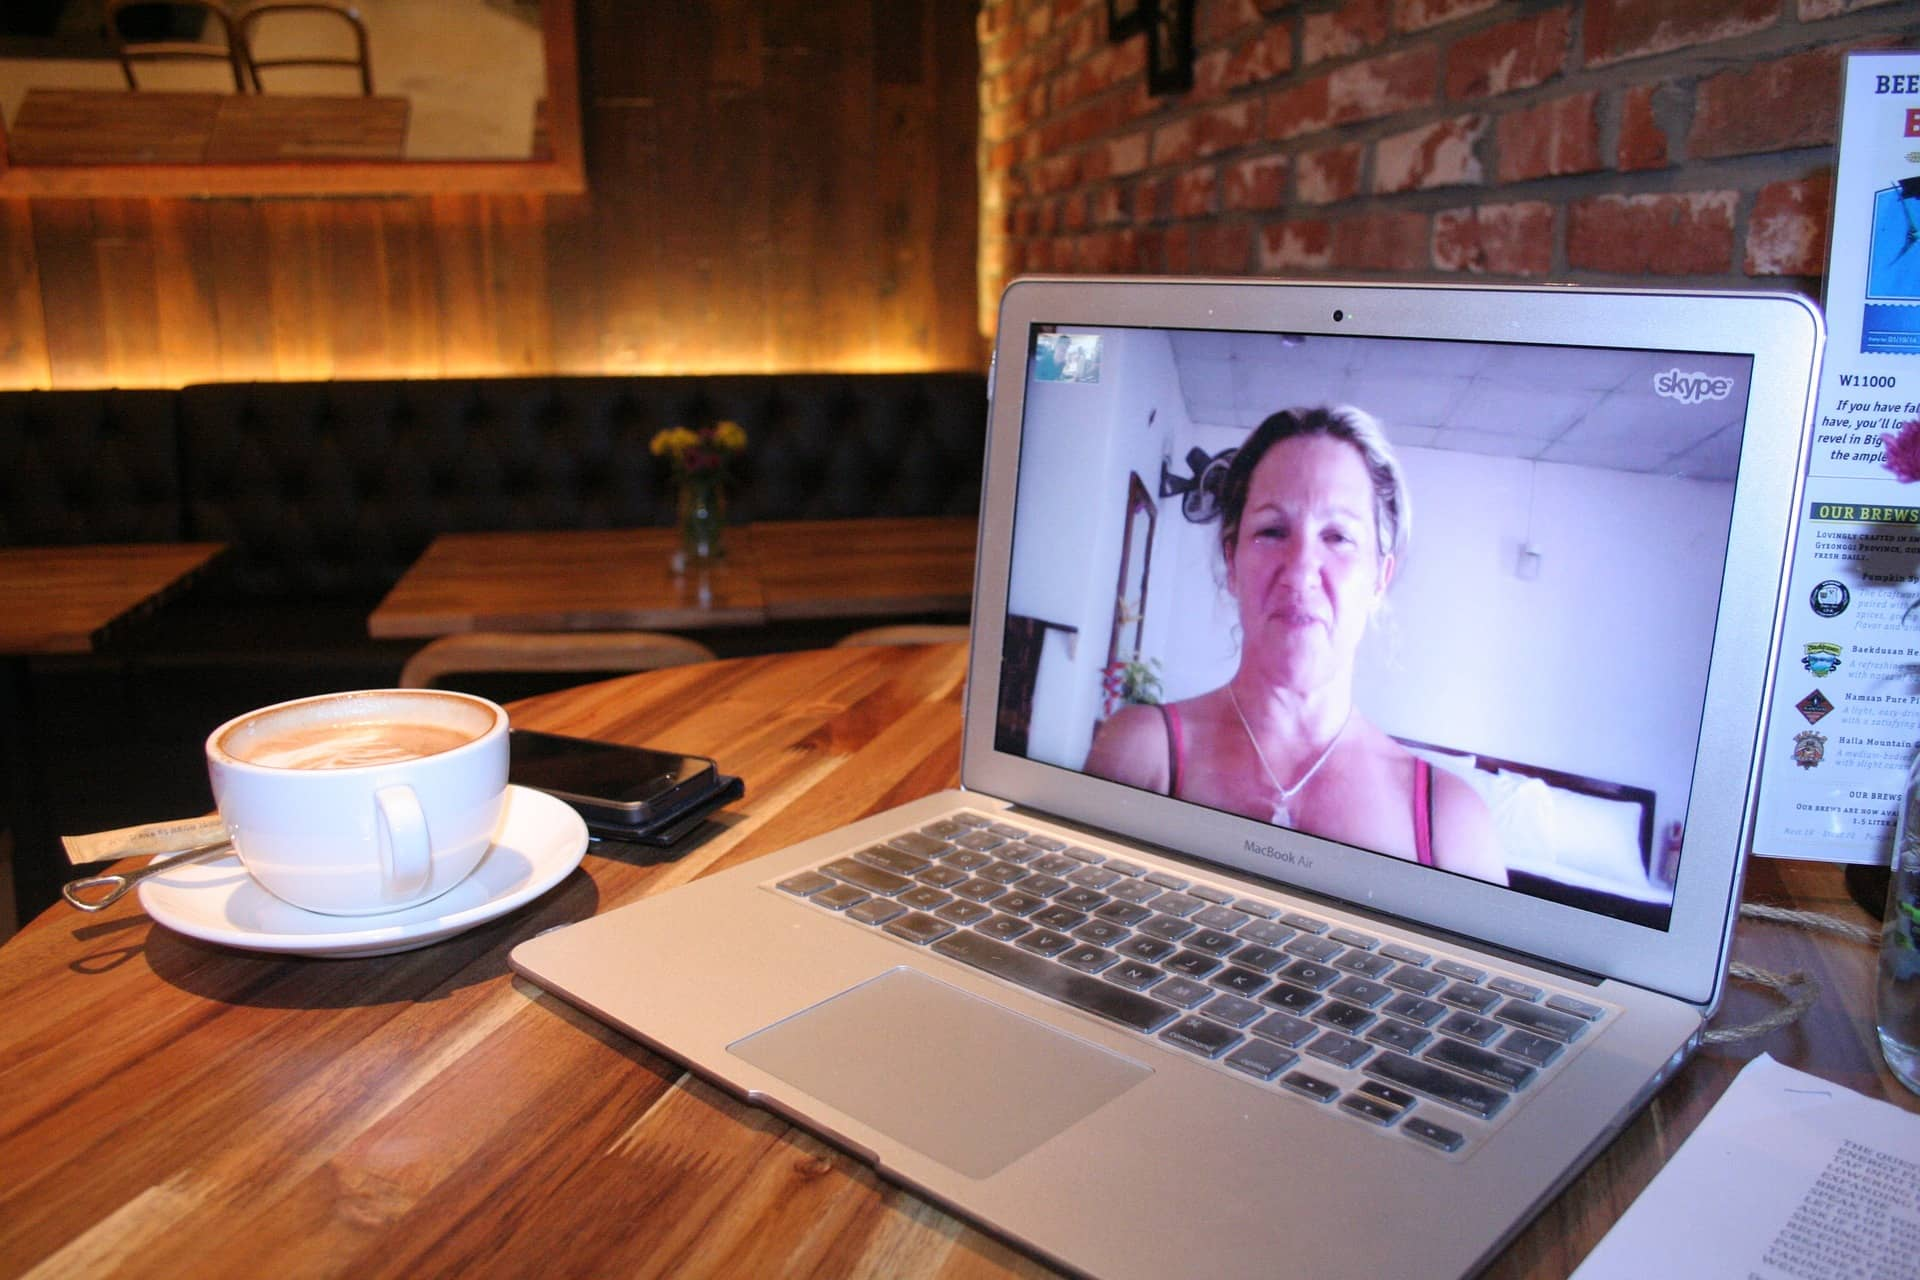 laptop and coffee cup on desk, picture of woman showing on laptop